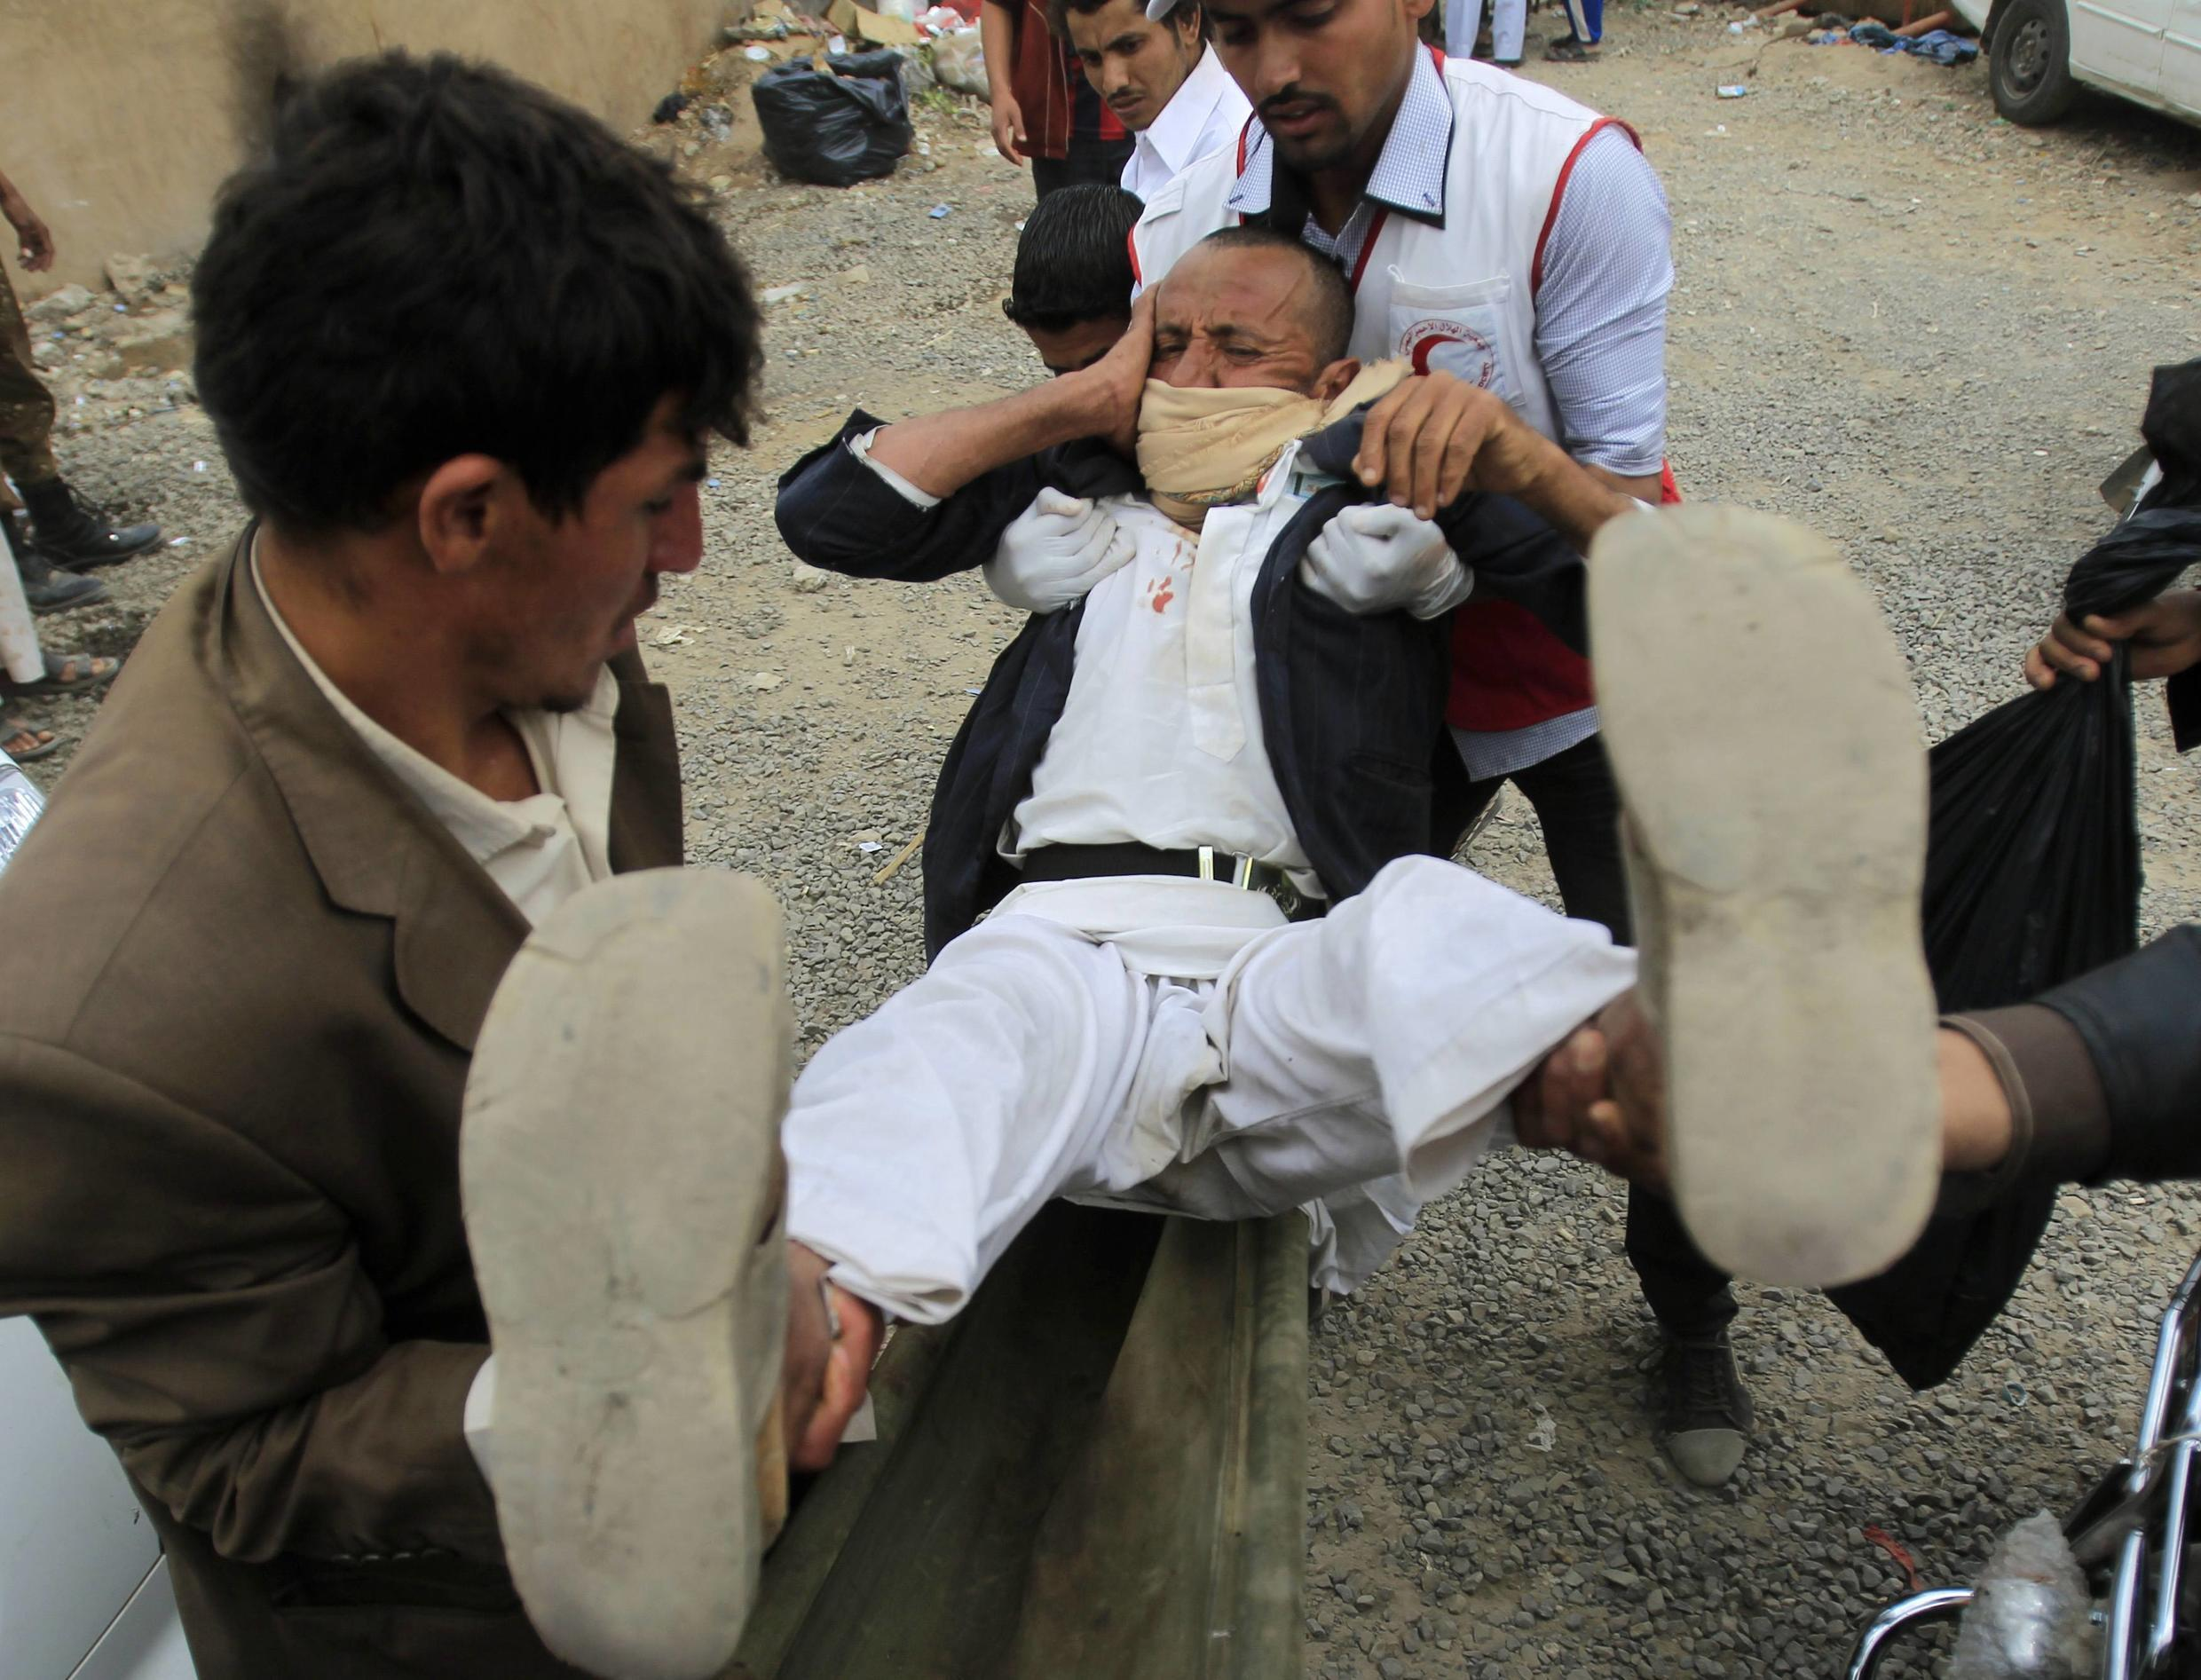 At least five people killed when gunmen fired on Yemeni protesters in Sanaa, Thursday